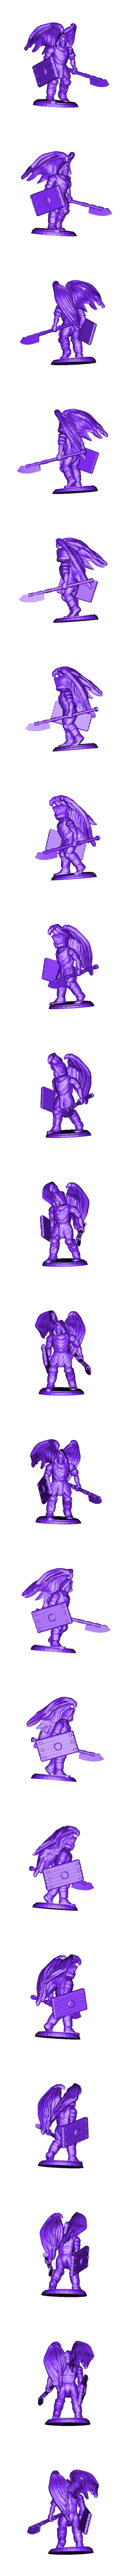 winged_guardian_walking.stl Download free STL file Fantasy Mini Collection (multiple poses) • 3D printable object, stockto